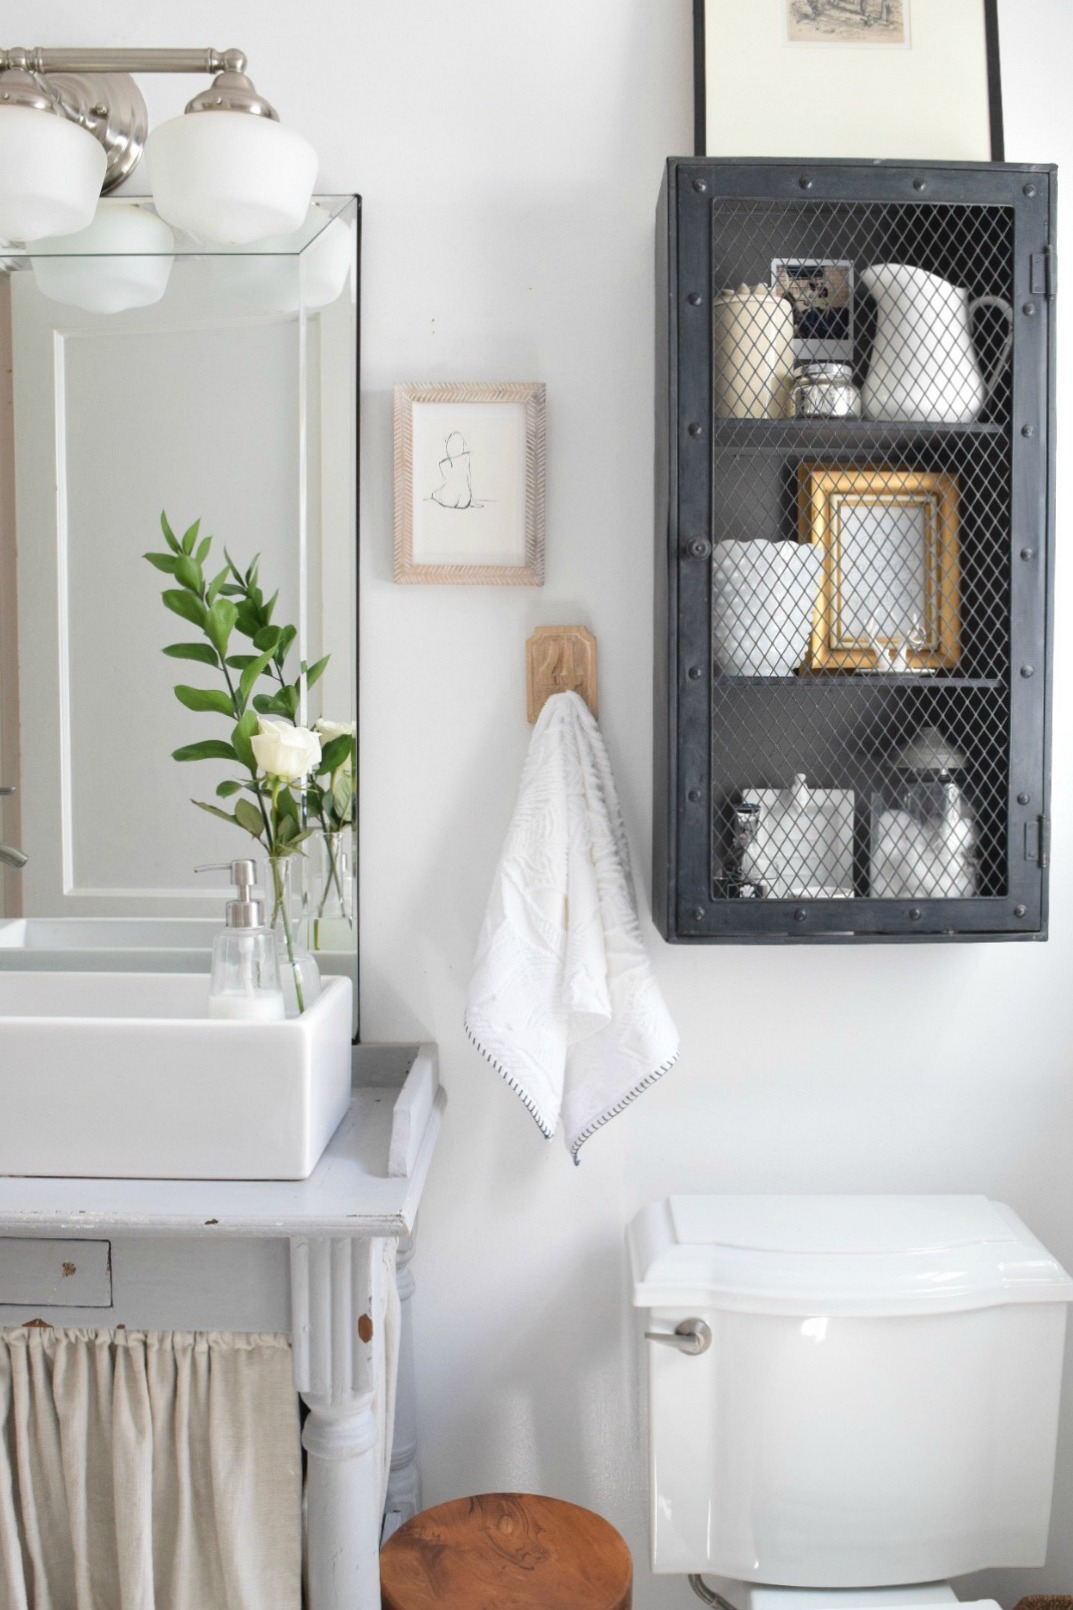 Small bathroom ideas and solutions in our tiny cape nesting with grace - Pictures of small bathrooms ...